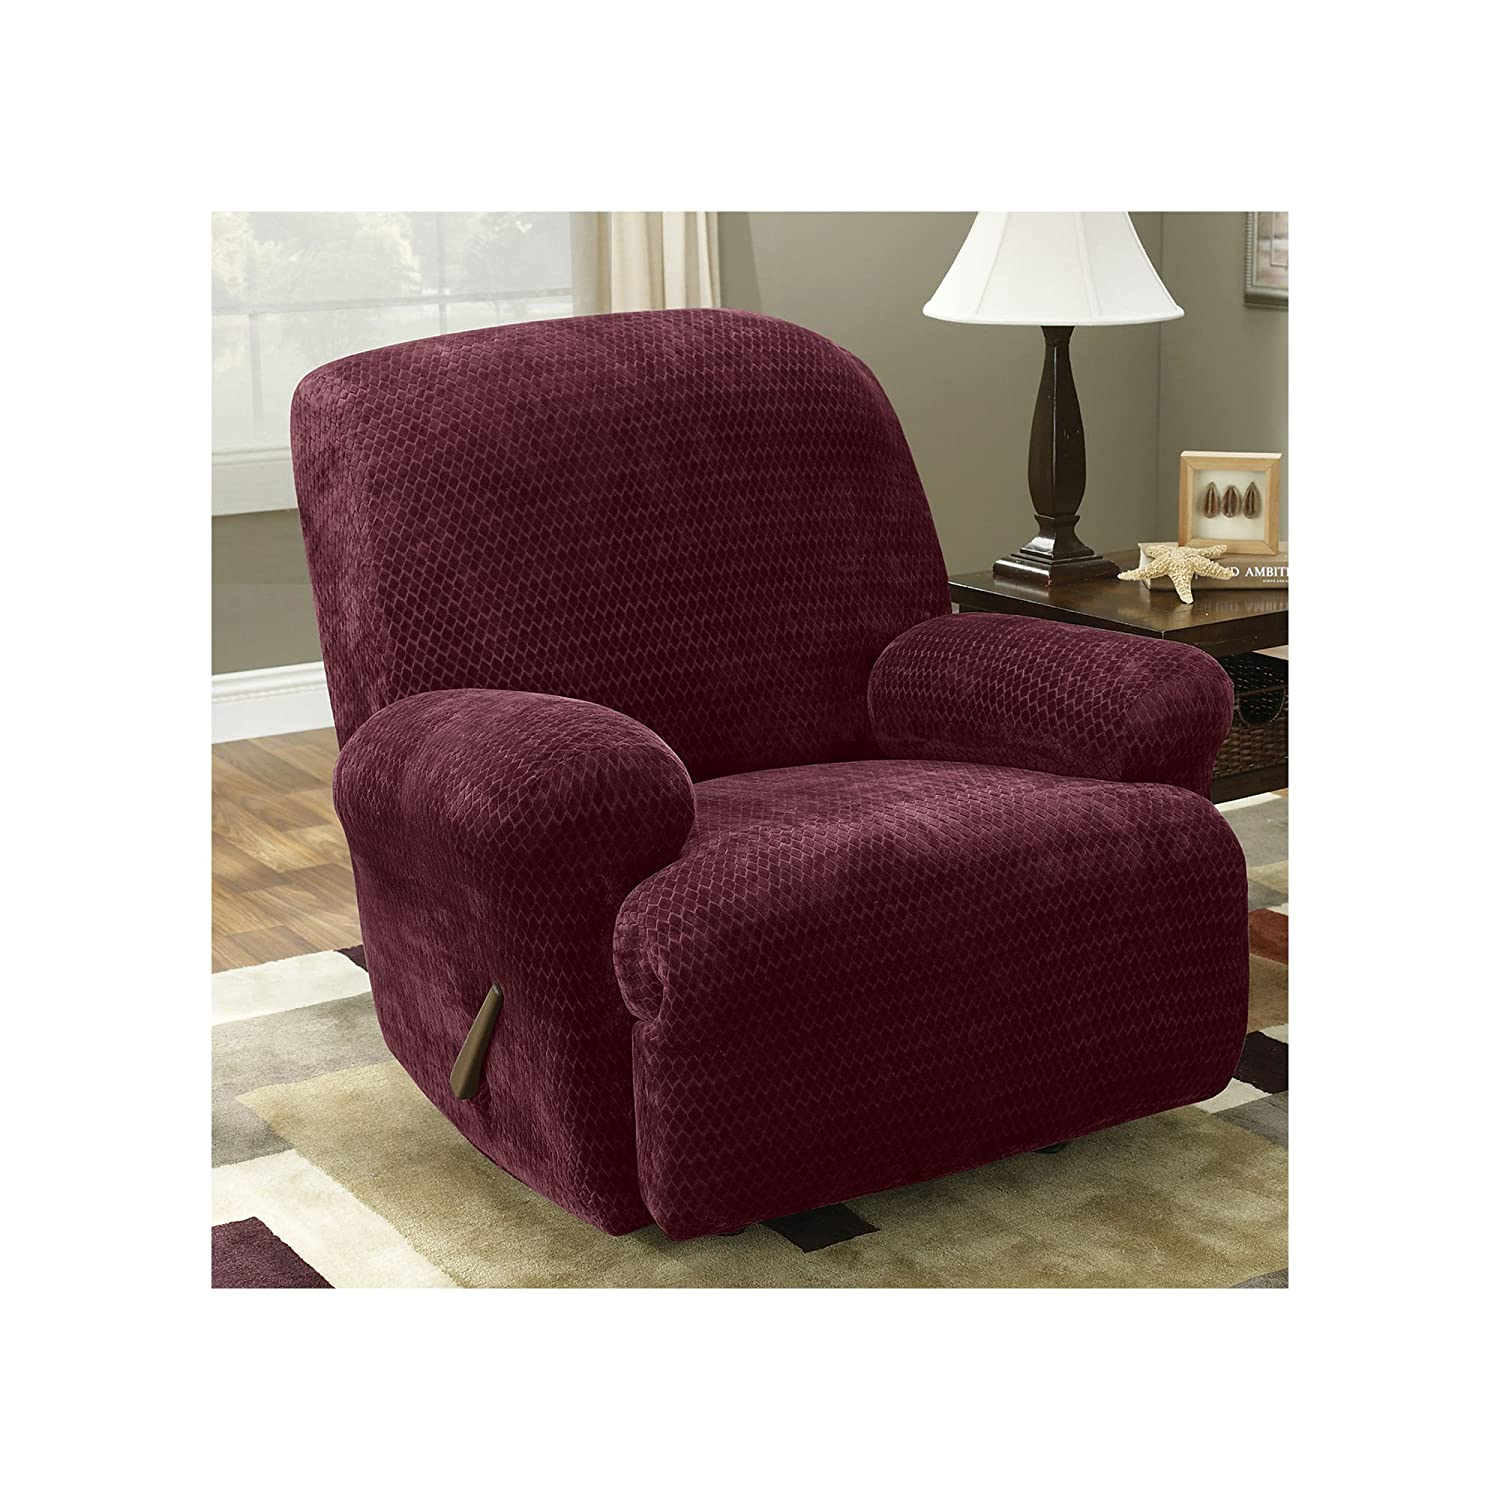 product today free overstock shipping slipcovers recliner fit home stretch slipcover plush sable sure garden